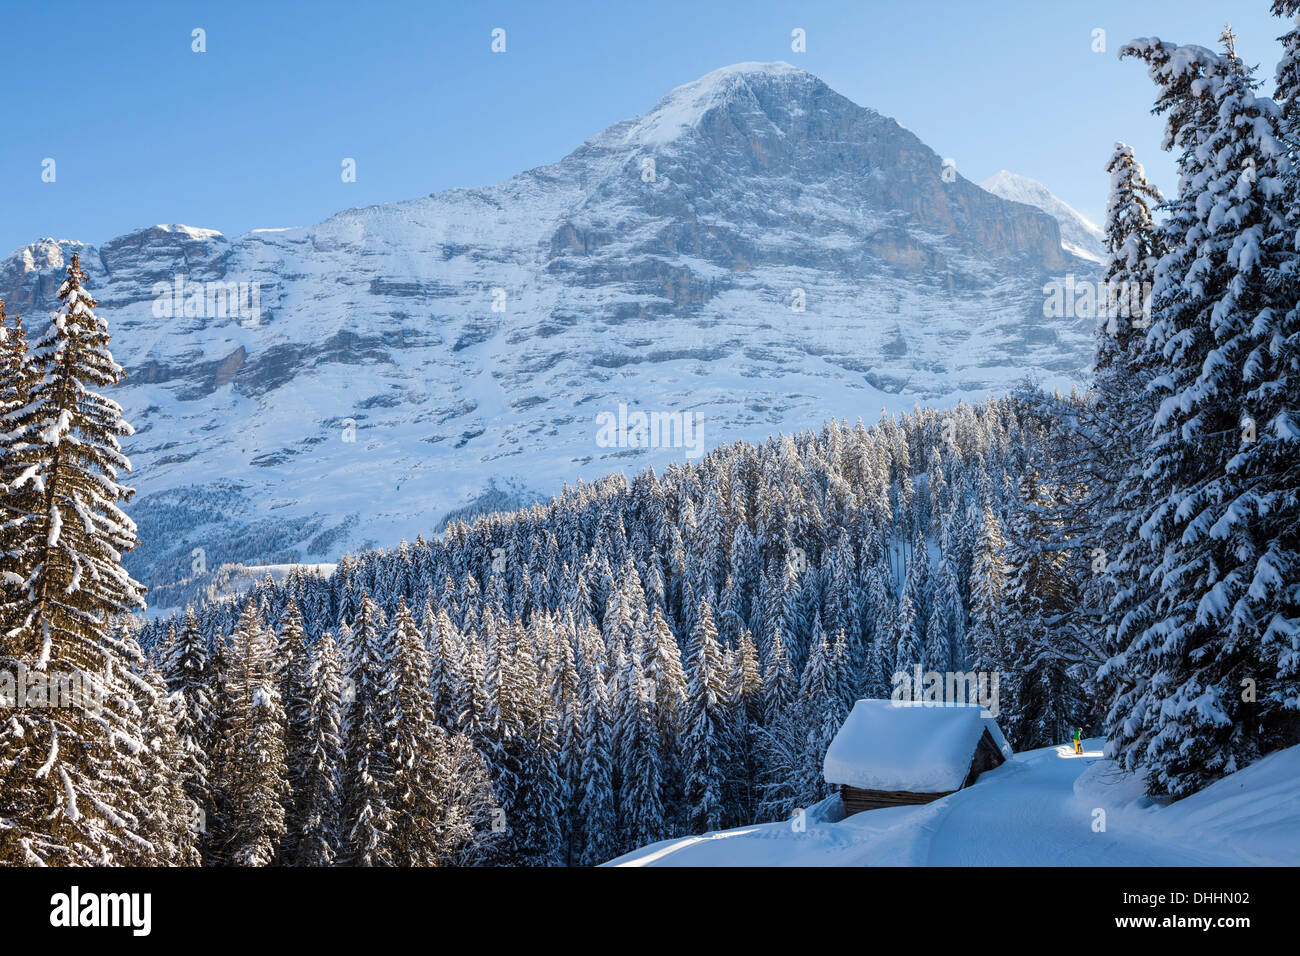 Snowshoe Trekking with dog and deep snowed in alpine cottage, in the background Eiger North Wall above Grindelwald, Jungfrauregi - Stock Image